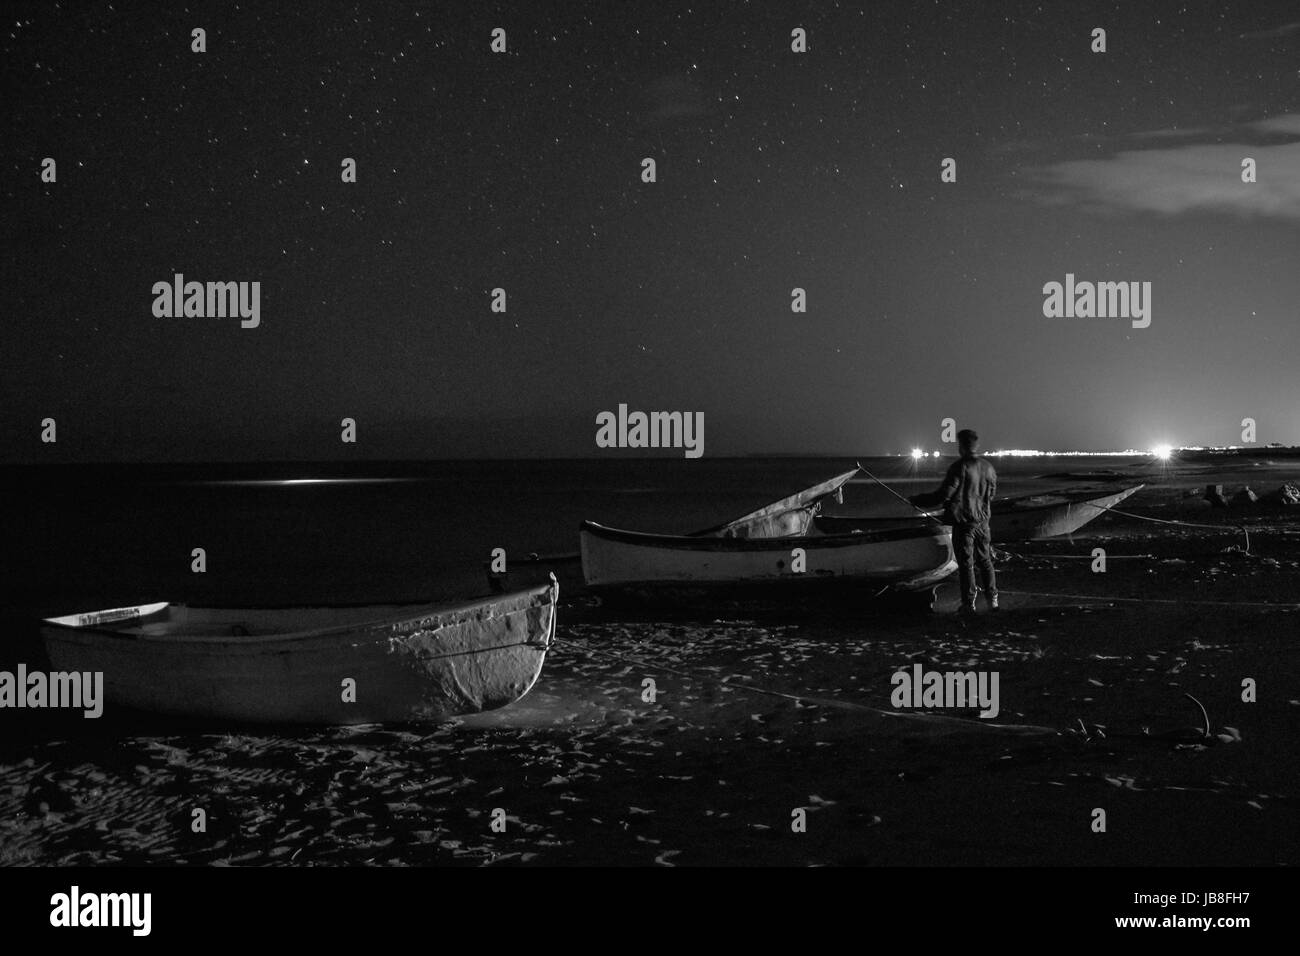 Man in the middle of the boats looks at the starry sky - Stock Image